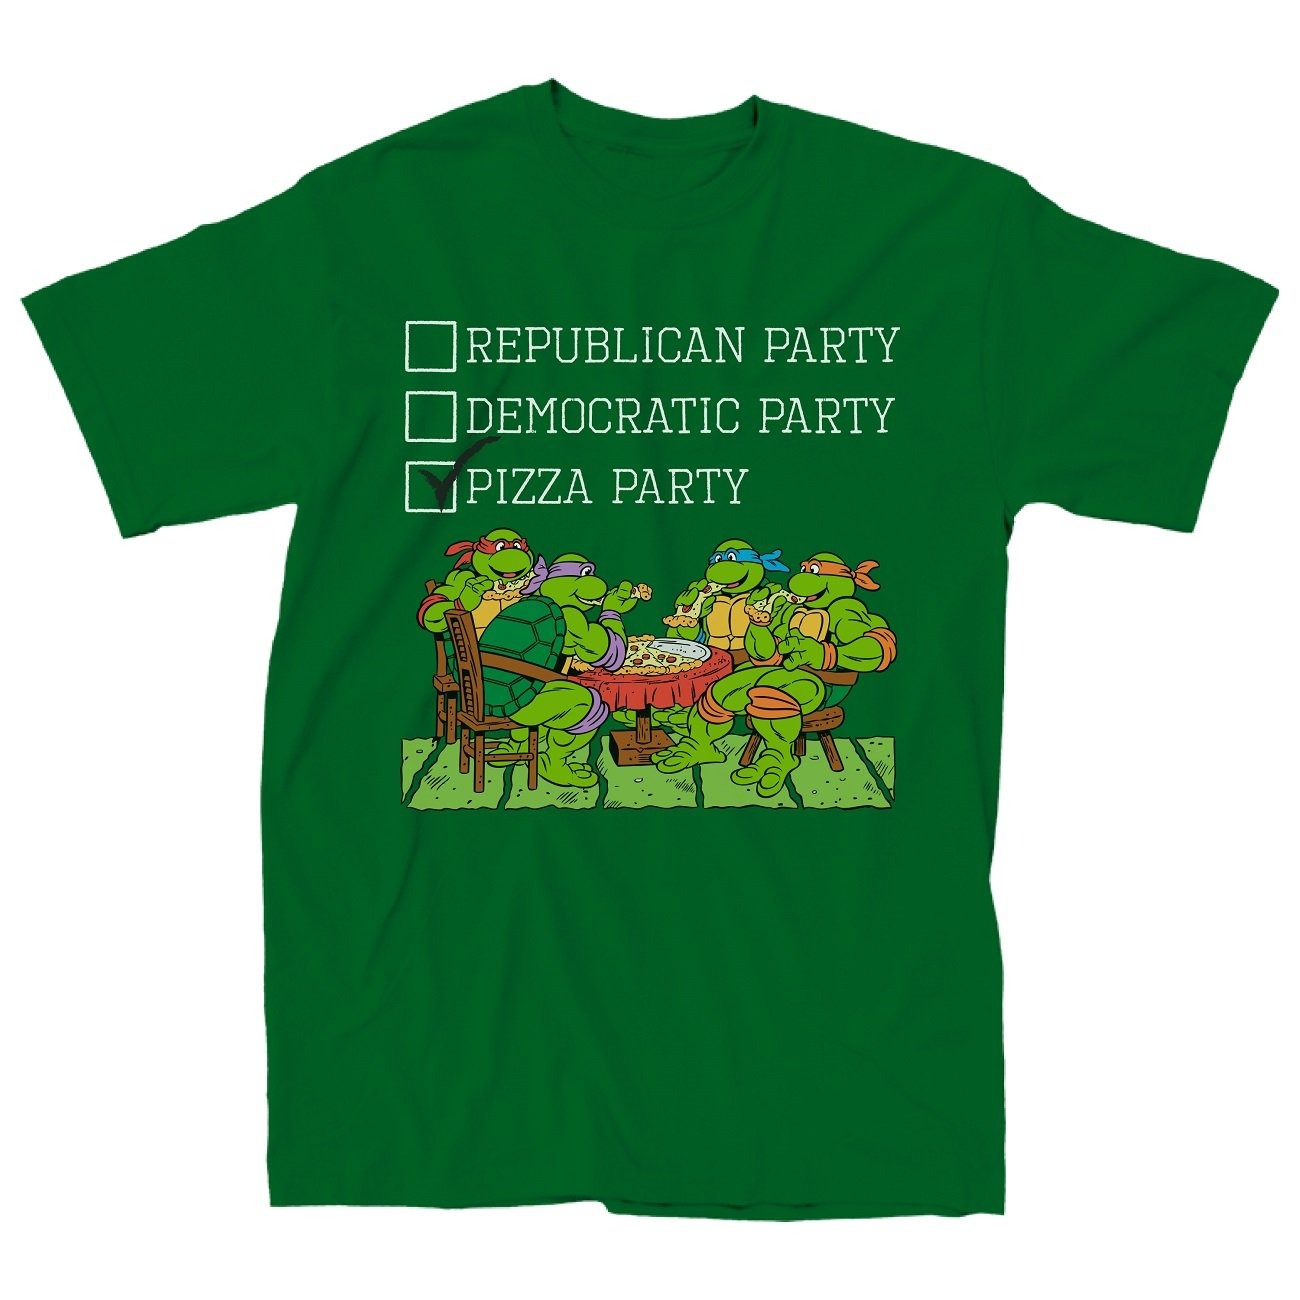 560249d0e2d62 Amazon.com  Teenage Mutant Ninja Turtles the Pizza Party Adult Green T-shirt  (Adult Small)  Clothing